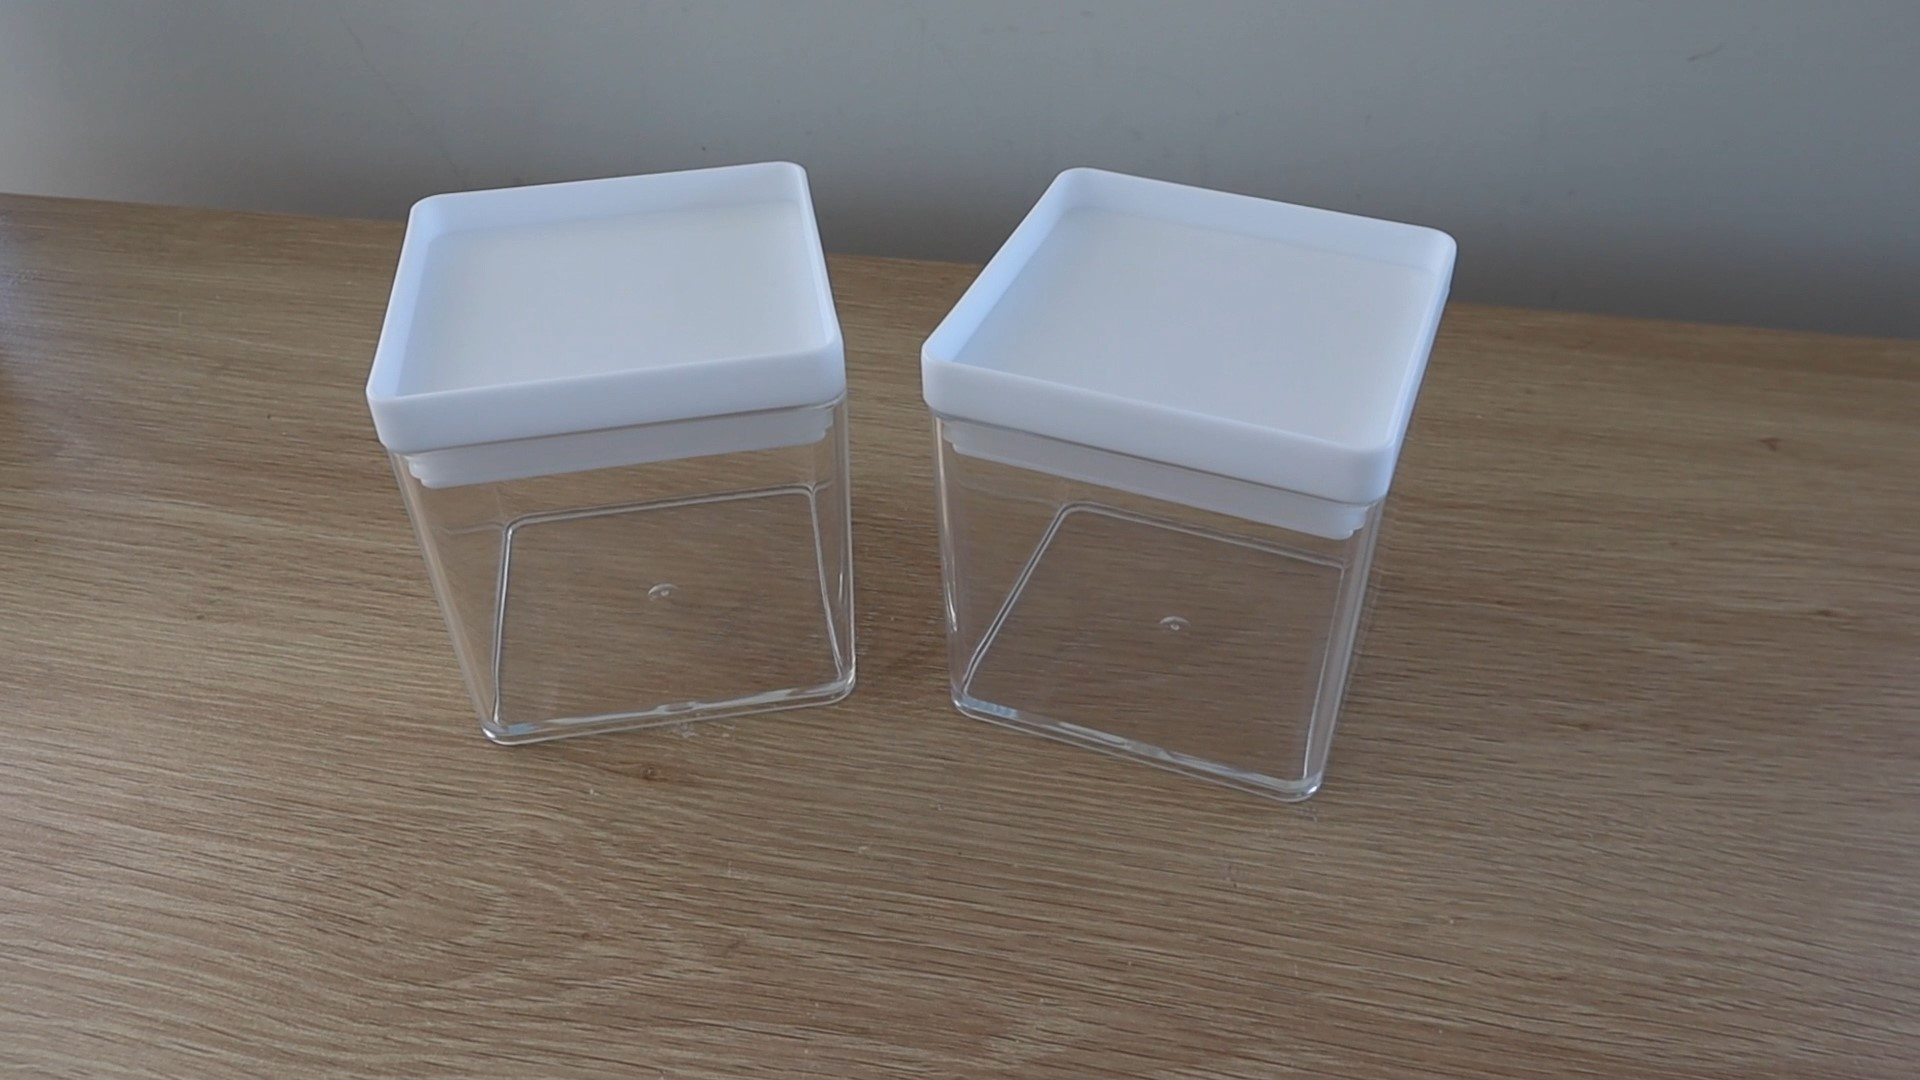 Two Food Containers For Food And Storage